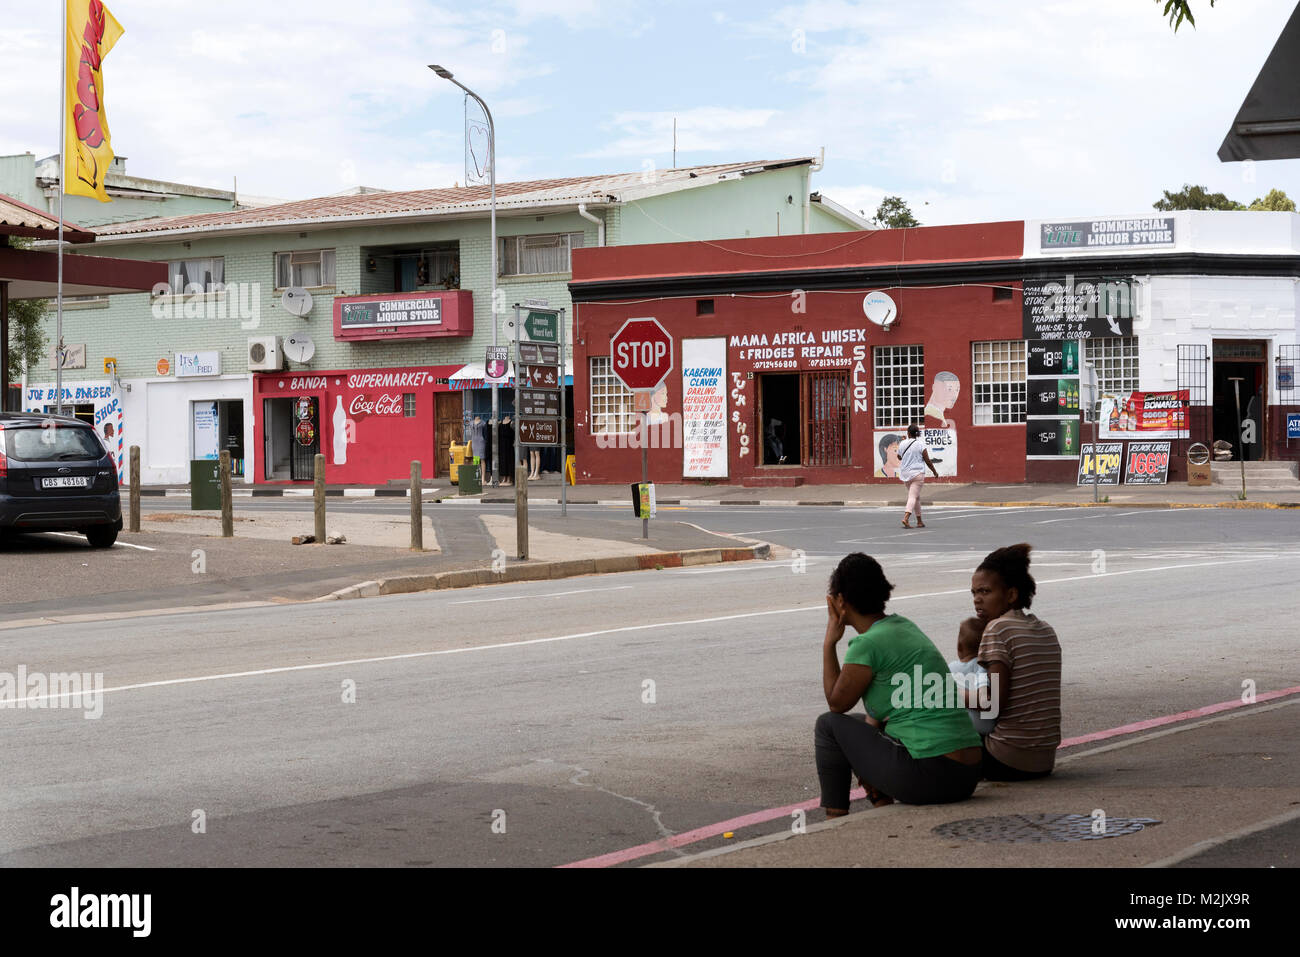 Town centre of Darling in the Western Cape region of South Africa. Local women sitting with a child on the roadside - Stock Image